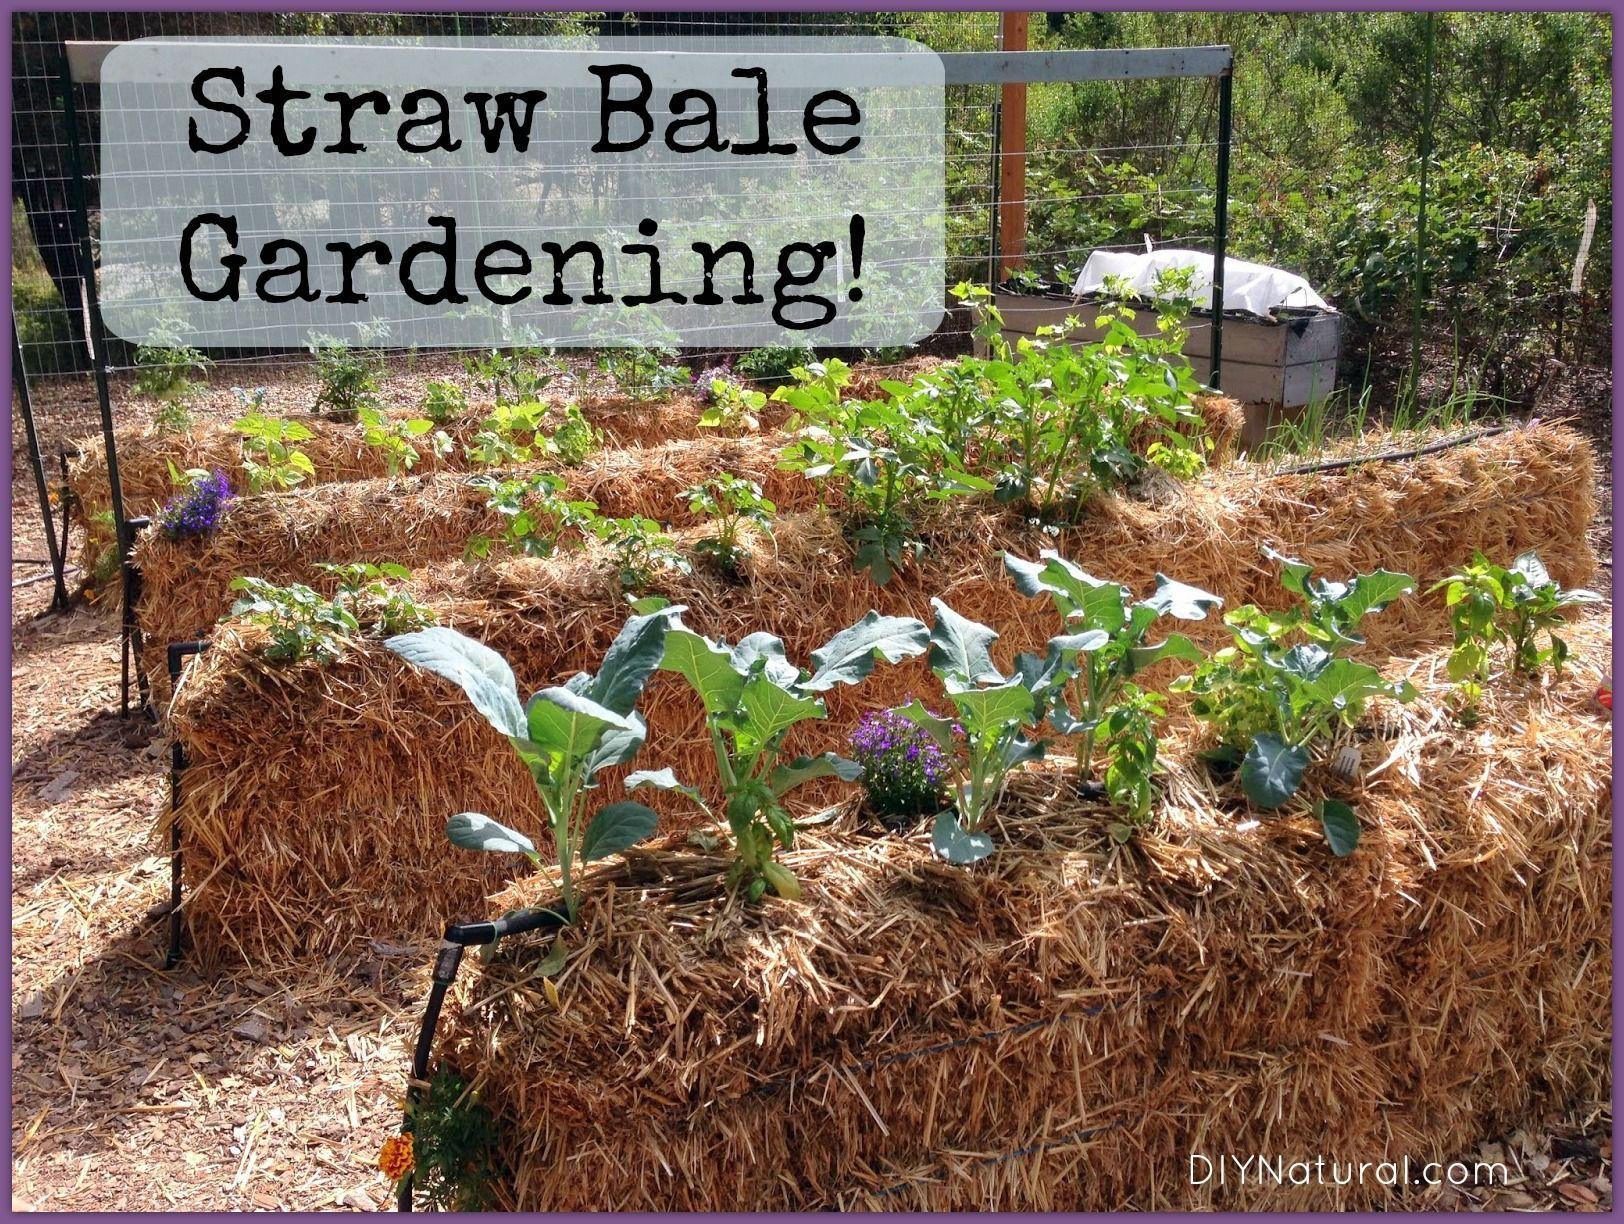 Straw bale gardening is simple and effective. Setting them up is ...